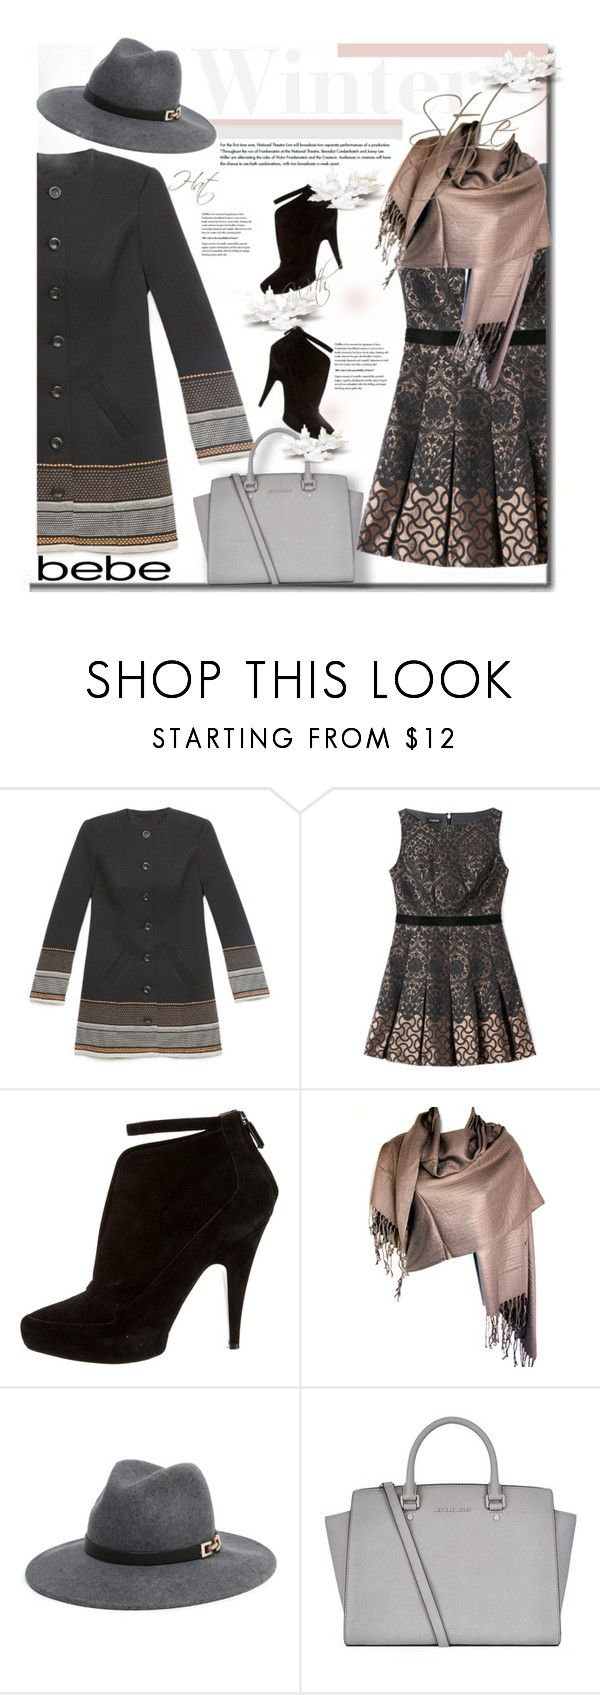 """Soirée de Luxe with bebe Holiday: Contest Entry"" by trendyyou ❤ liked on Polyvore featuring Bebe, Givenchy, MICHAEL Michael Kors, bebe, polyvorecontest, holidaystyle and holiday2015"